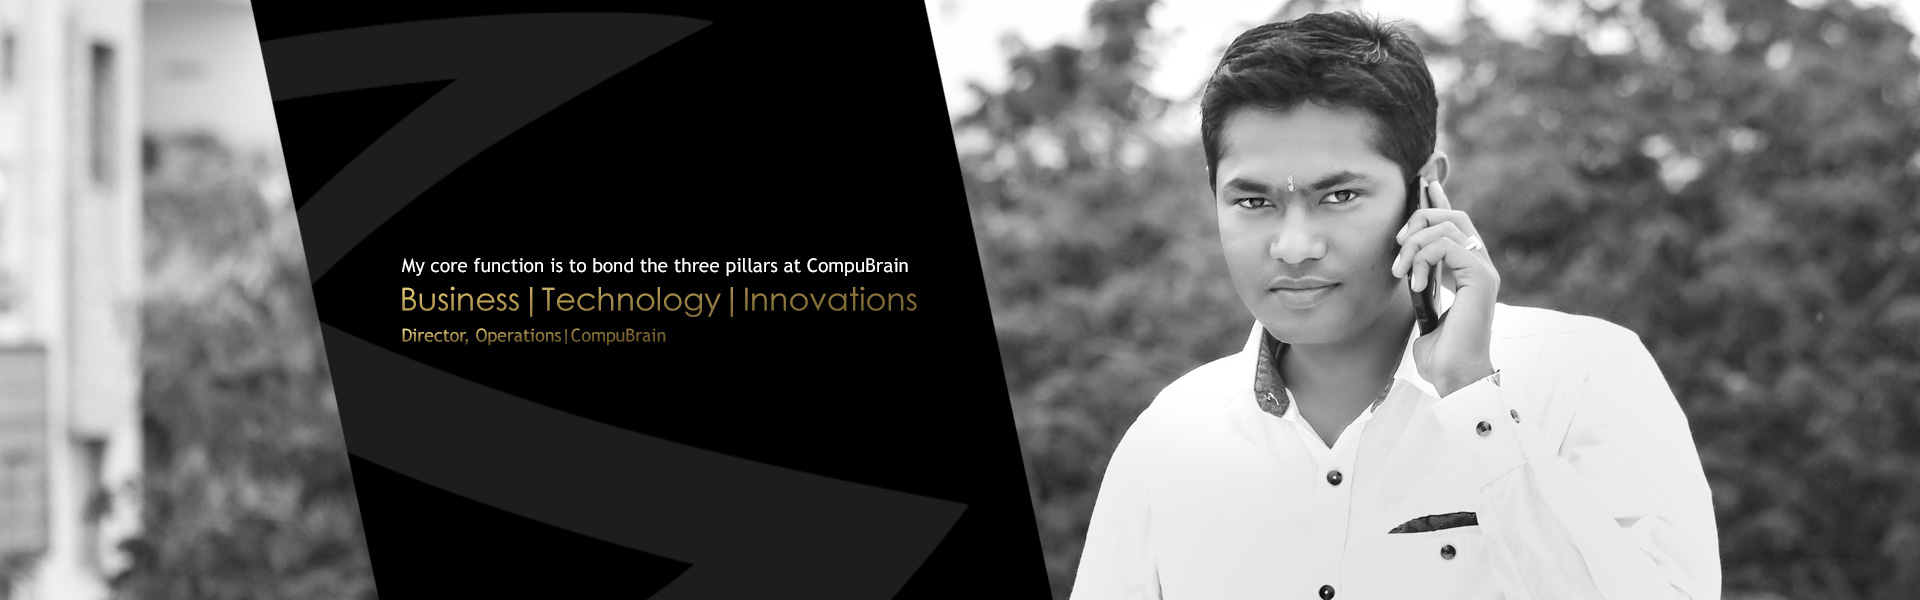 Hiren Doshi Director of operations at CompuBrain my core function is to bond the three pillars at CompuBrain: Business, Technology and Innovations